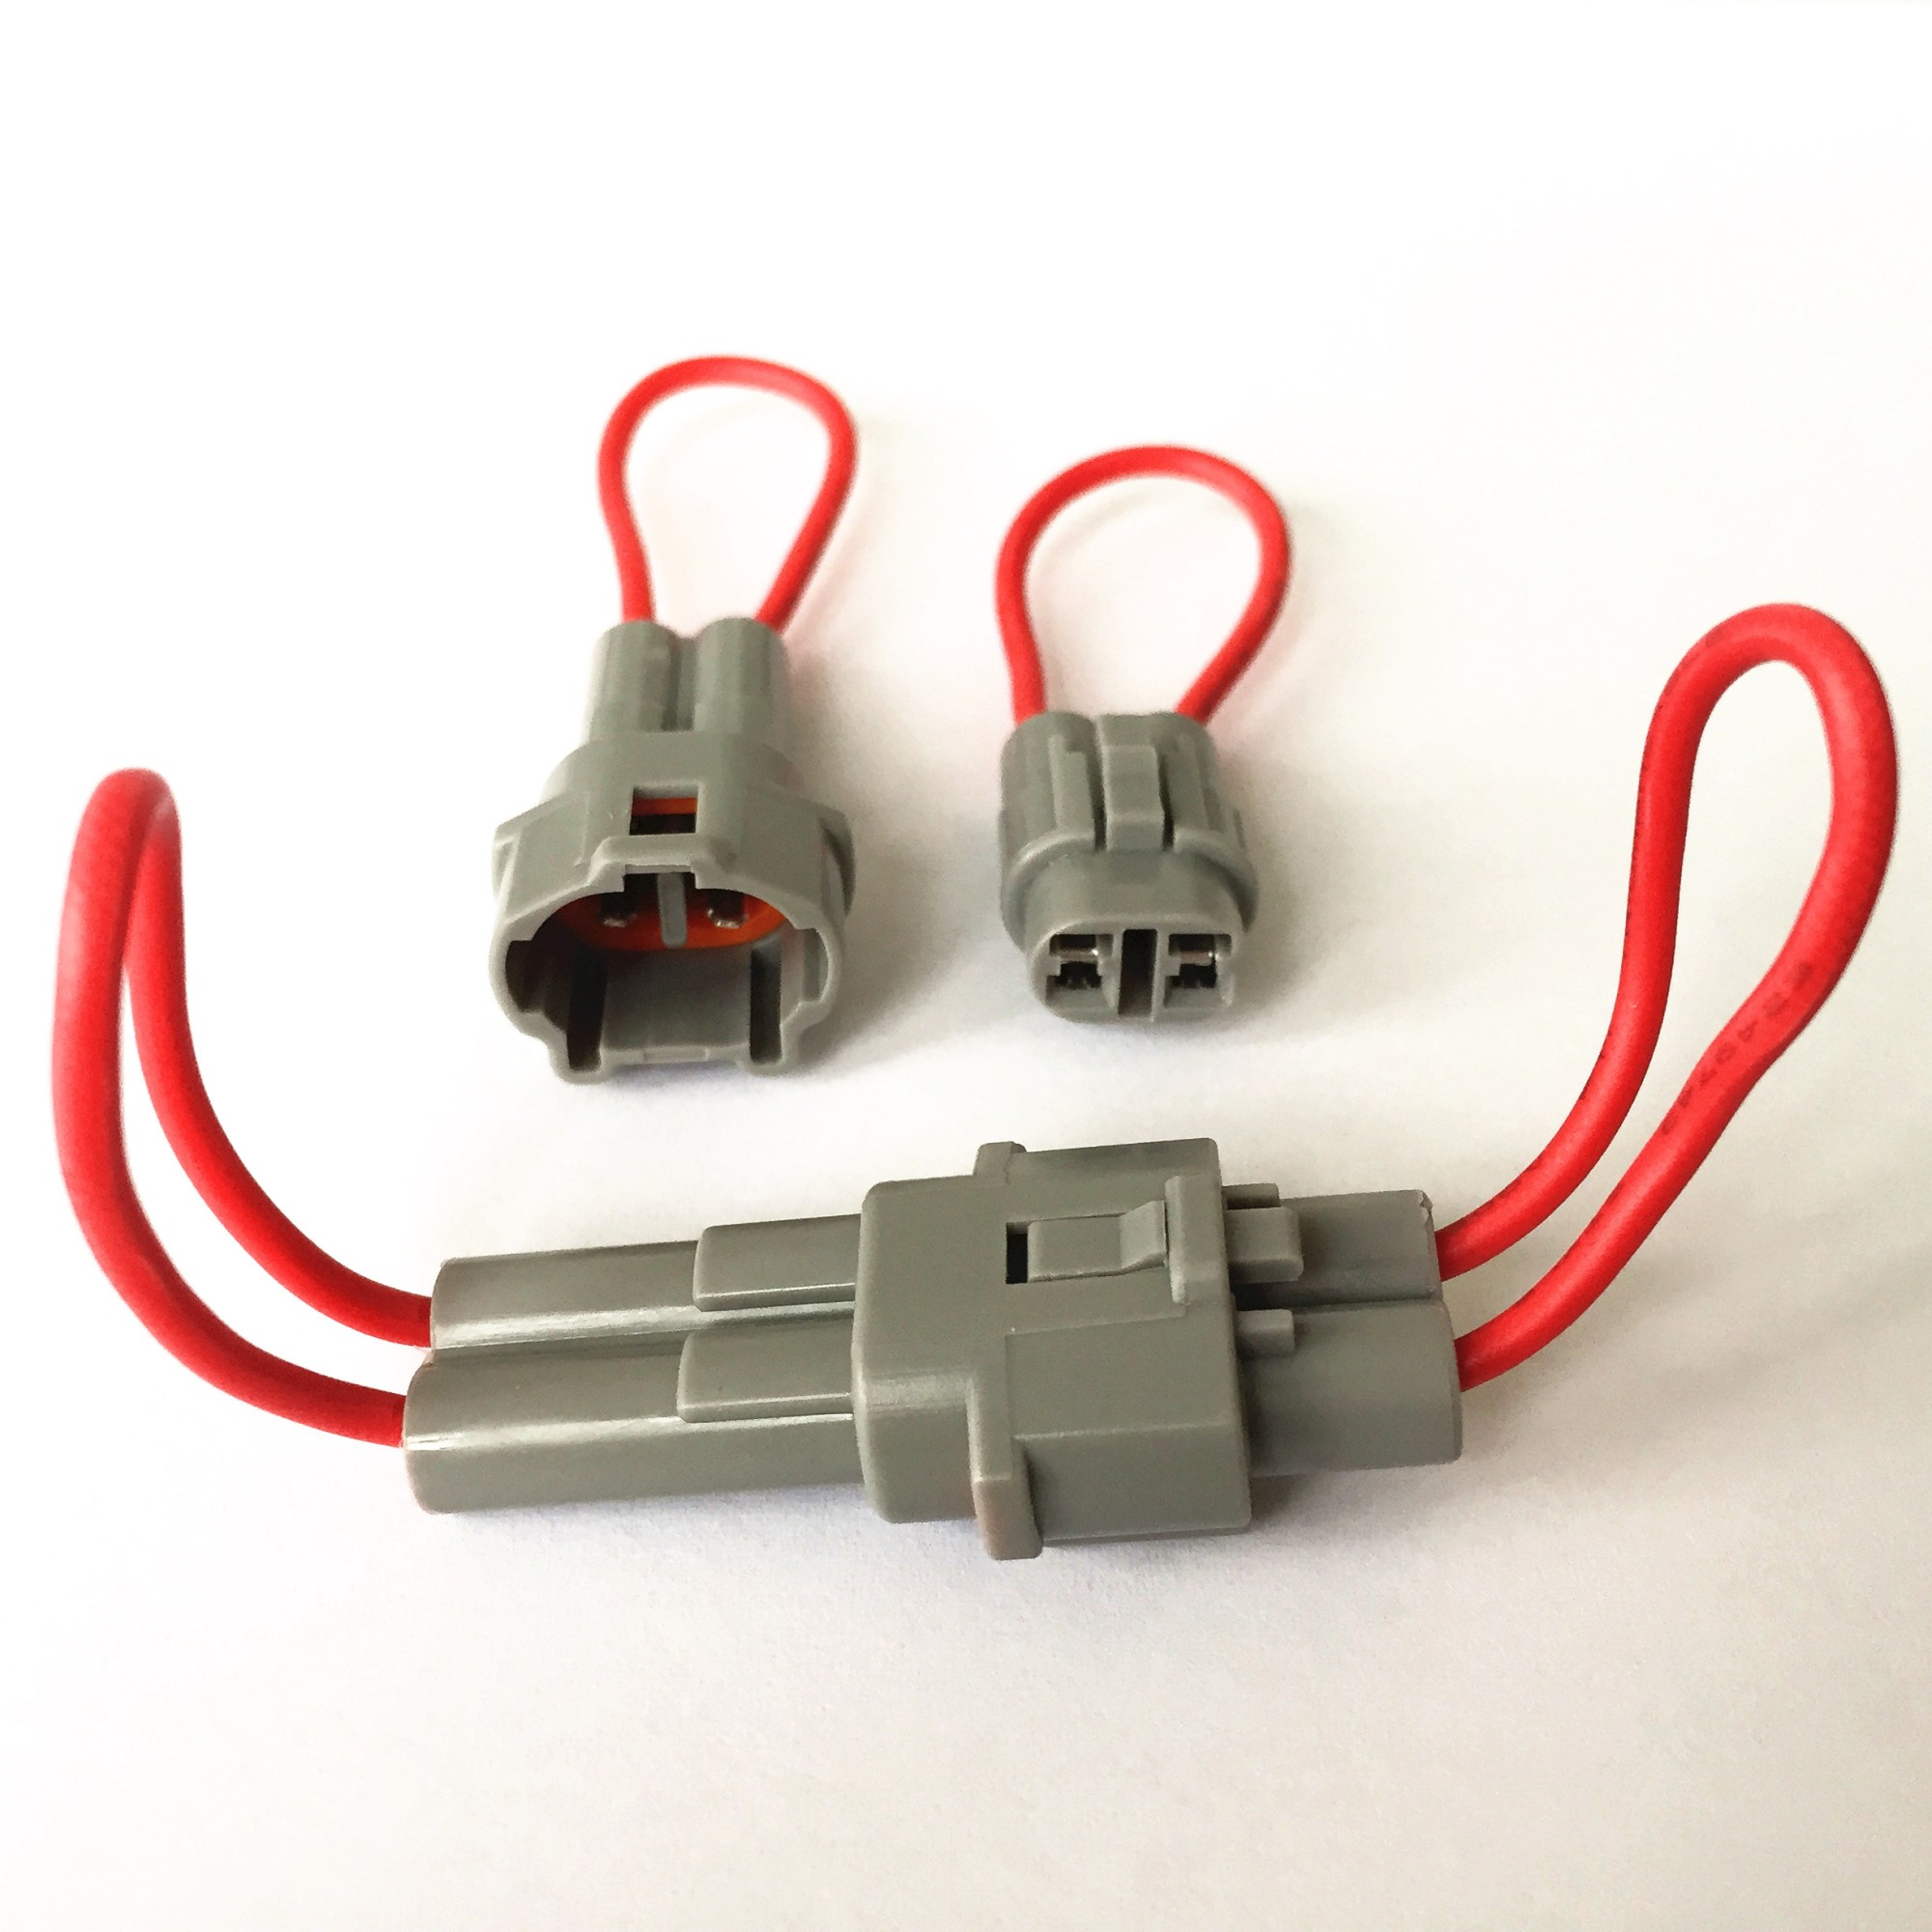 hight resolution of automotive wiring kit automotive wiring kit suppliers and 61872311 auto wiring harness connector for toyota buy auto wiring